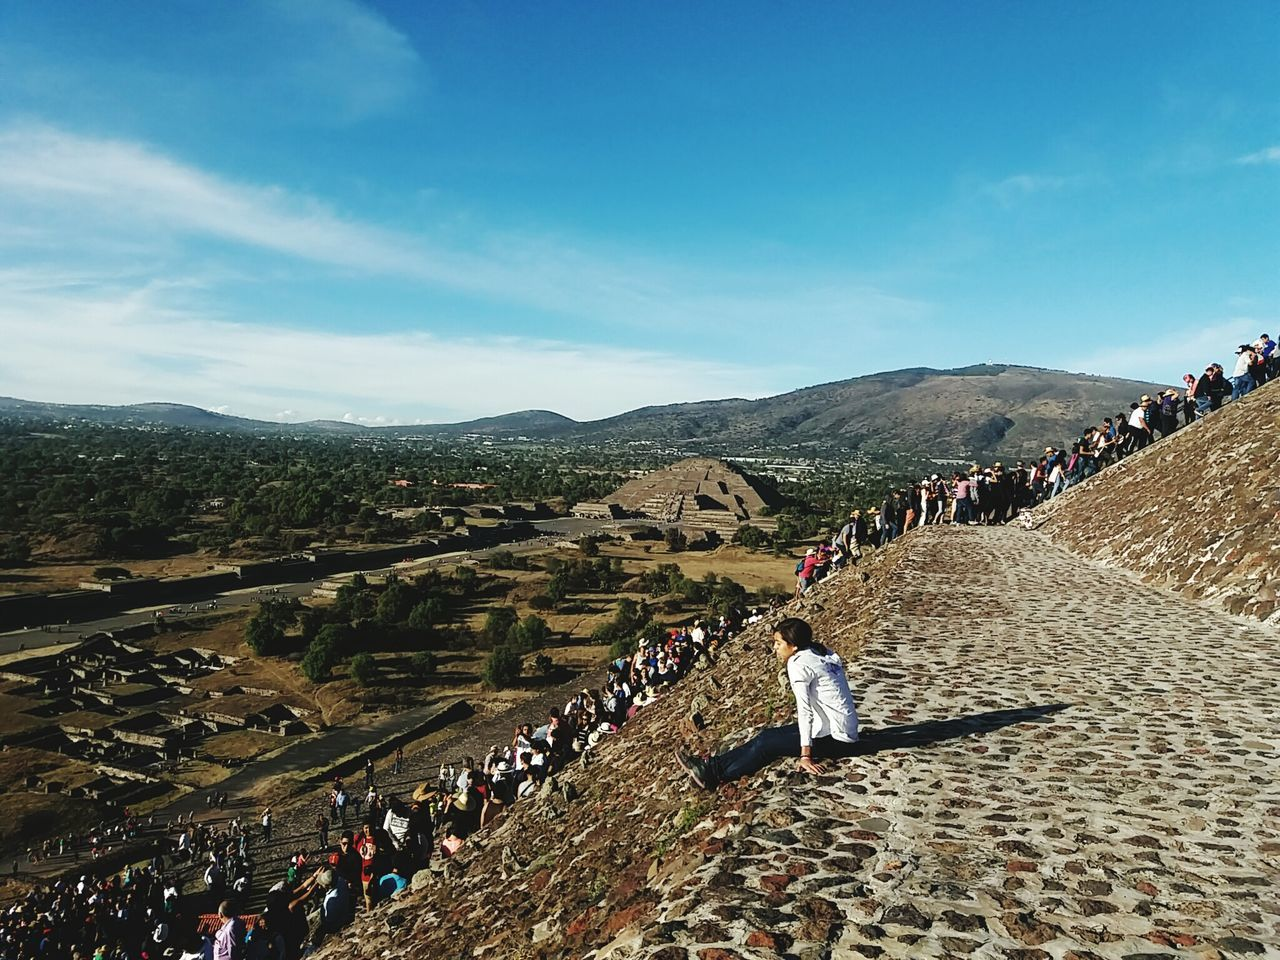 large group of people, real people, women, leisure activity, lifestyles, men, mountain, mixed age range, high angle view, day, crowd, outdoors, travel destinations, history, nature, ancient civilization, ancient, sky, built structure, vacations, pyramid, architecture, beauty in nature, adult, people, adults only